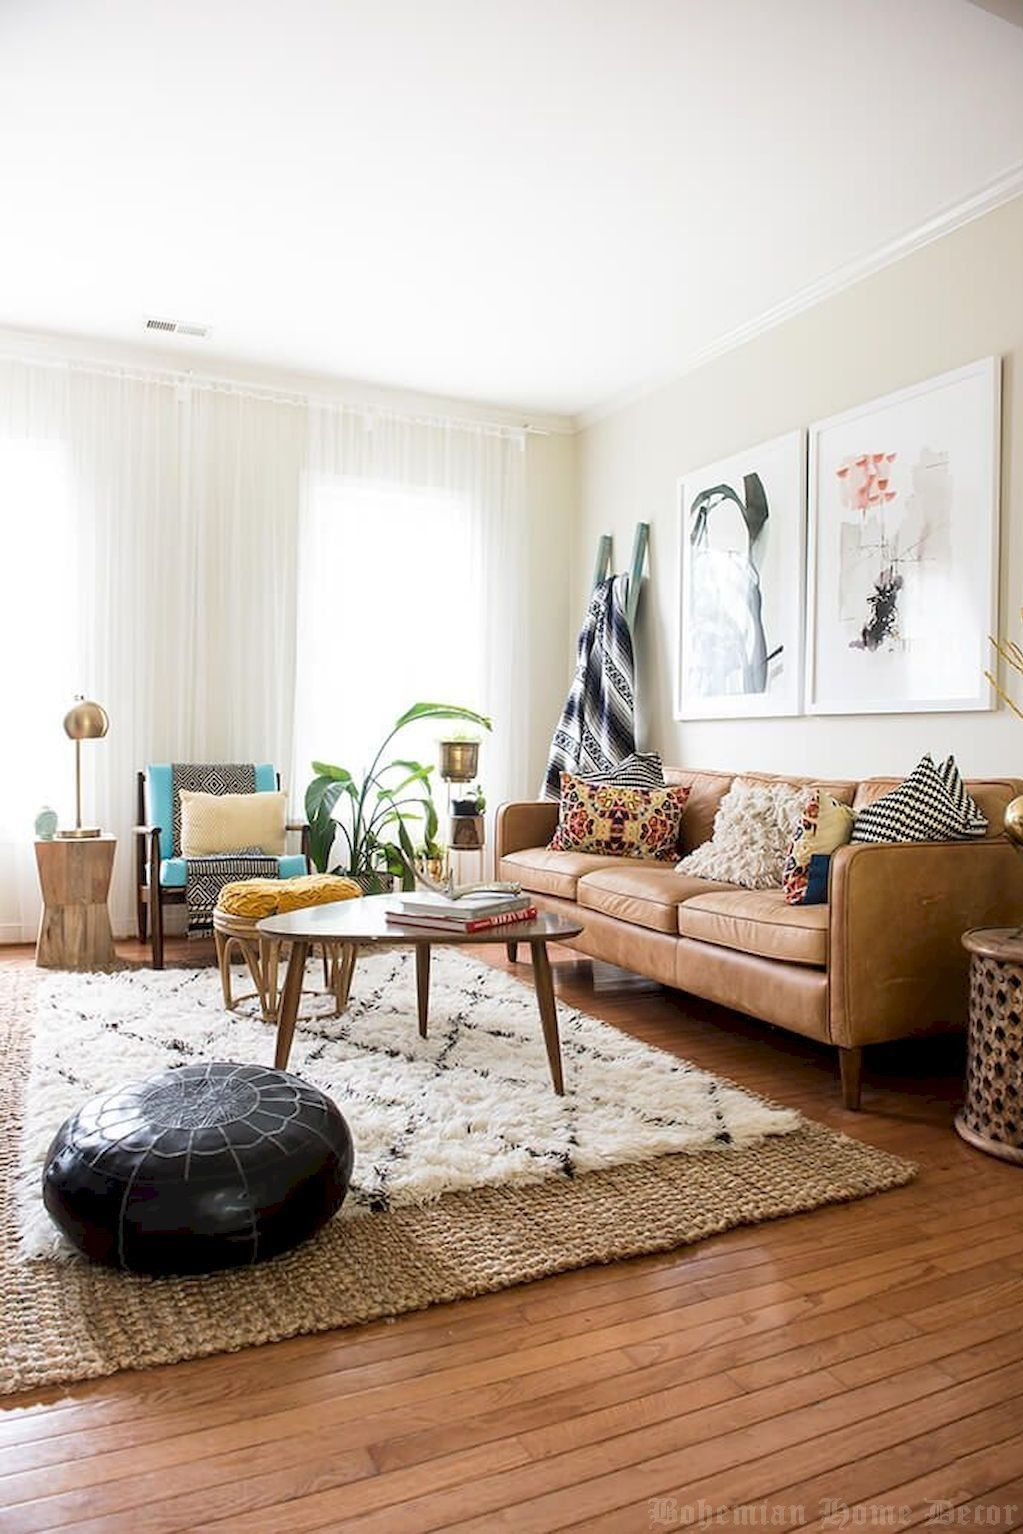 Bohemian Home Decor Expert Interview